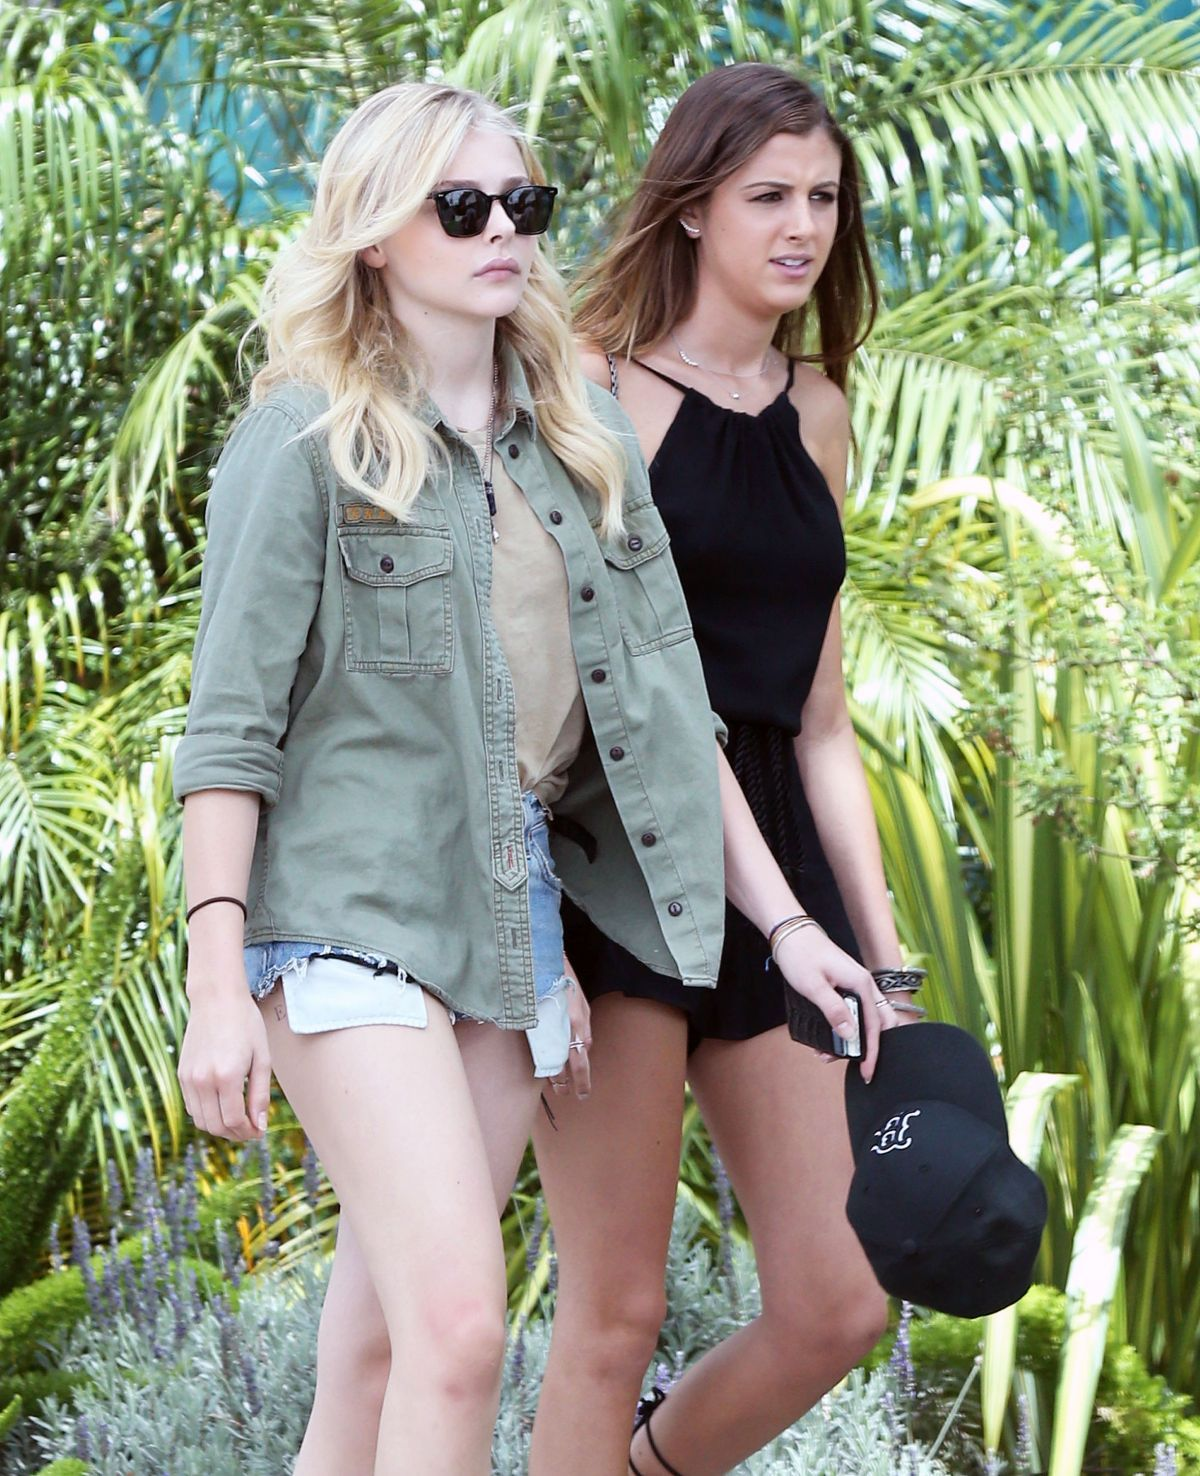 Chloe Moretz Out And About In Beverly Hills 08 03 2015